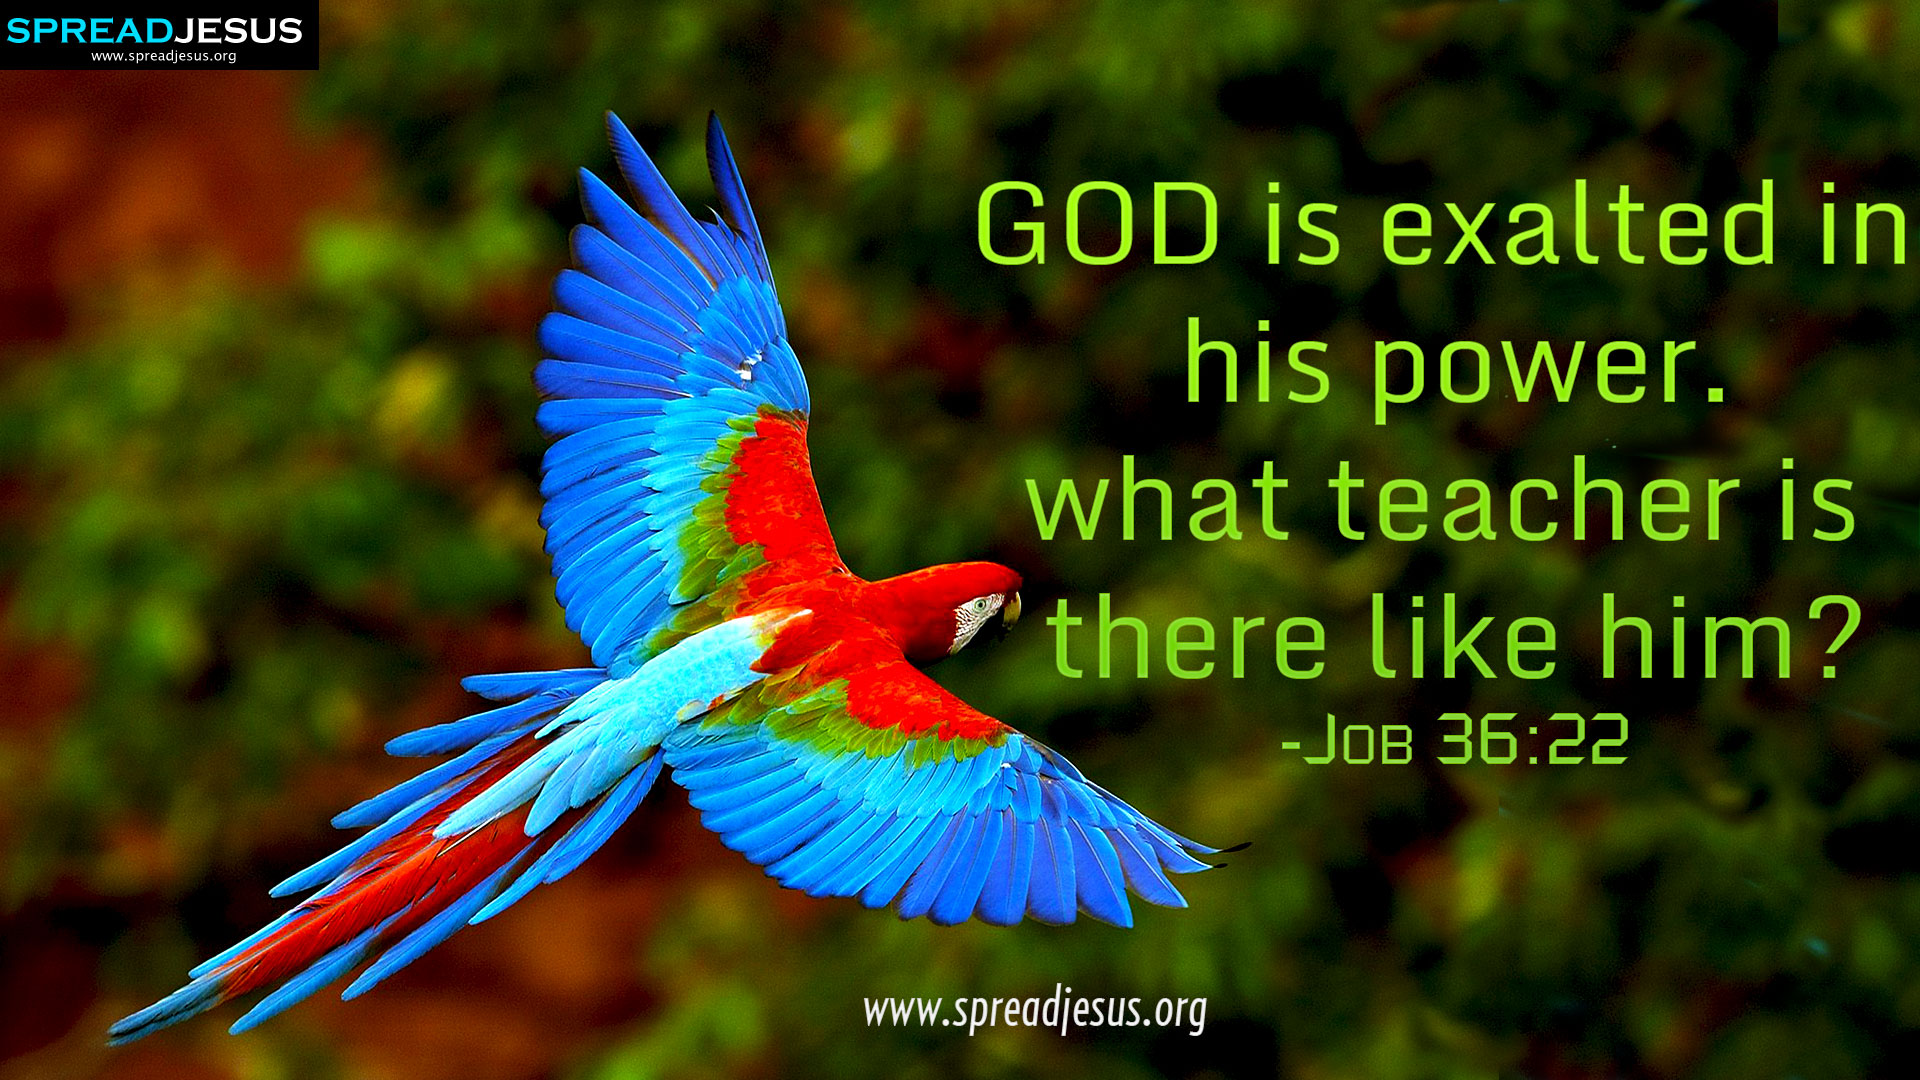 CHRISTIAN HD WALLPAPERS HOLY BIBLE QUOTES Job 3622 GOD is exalted 1920x1080